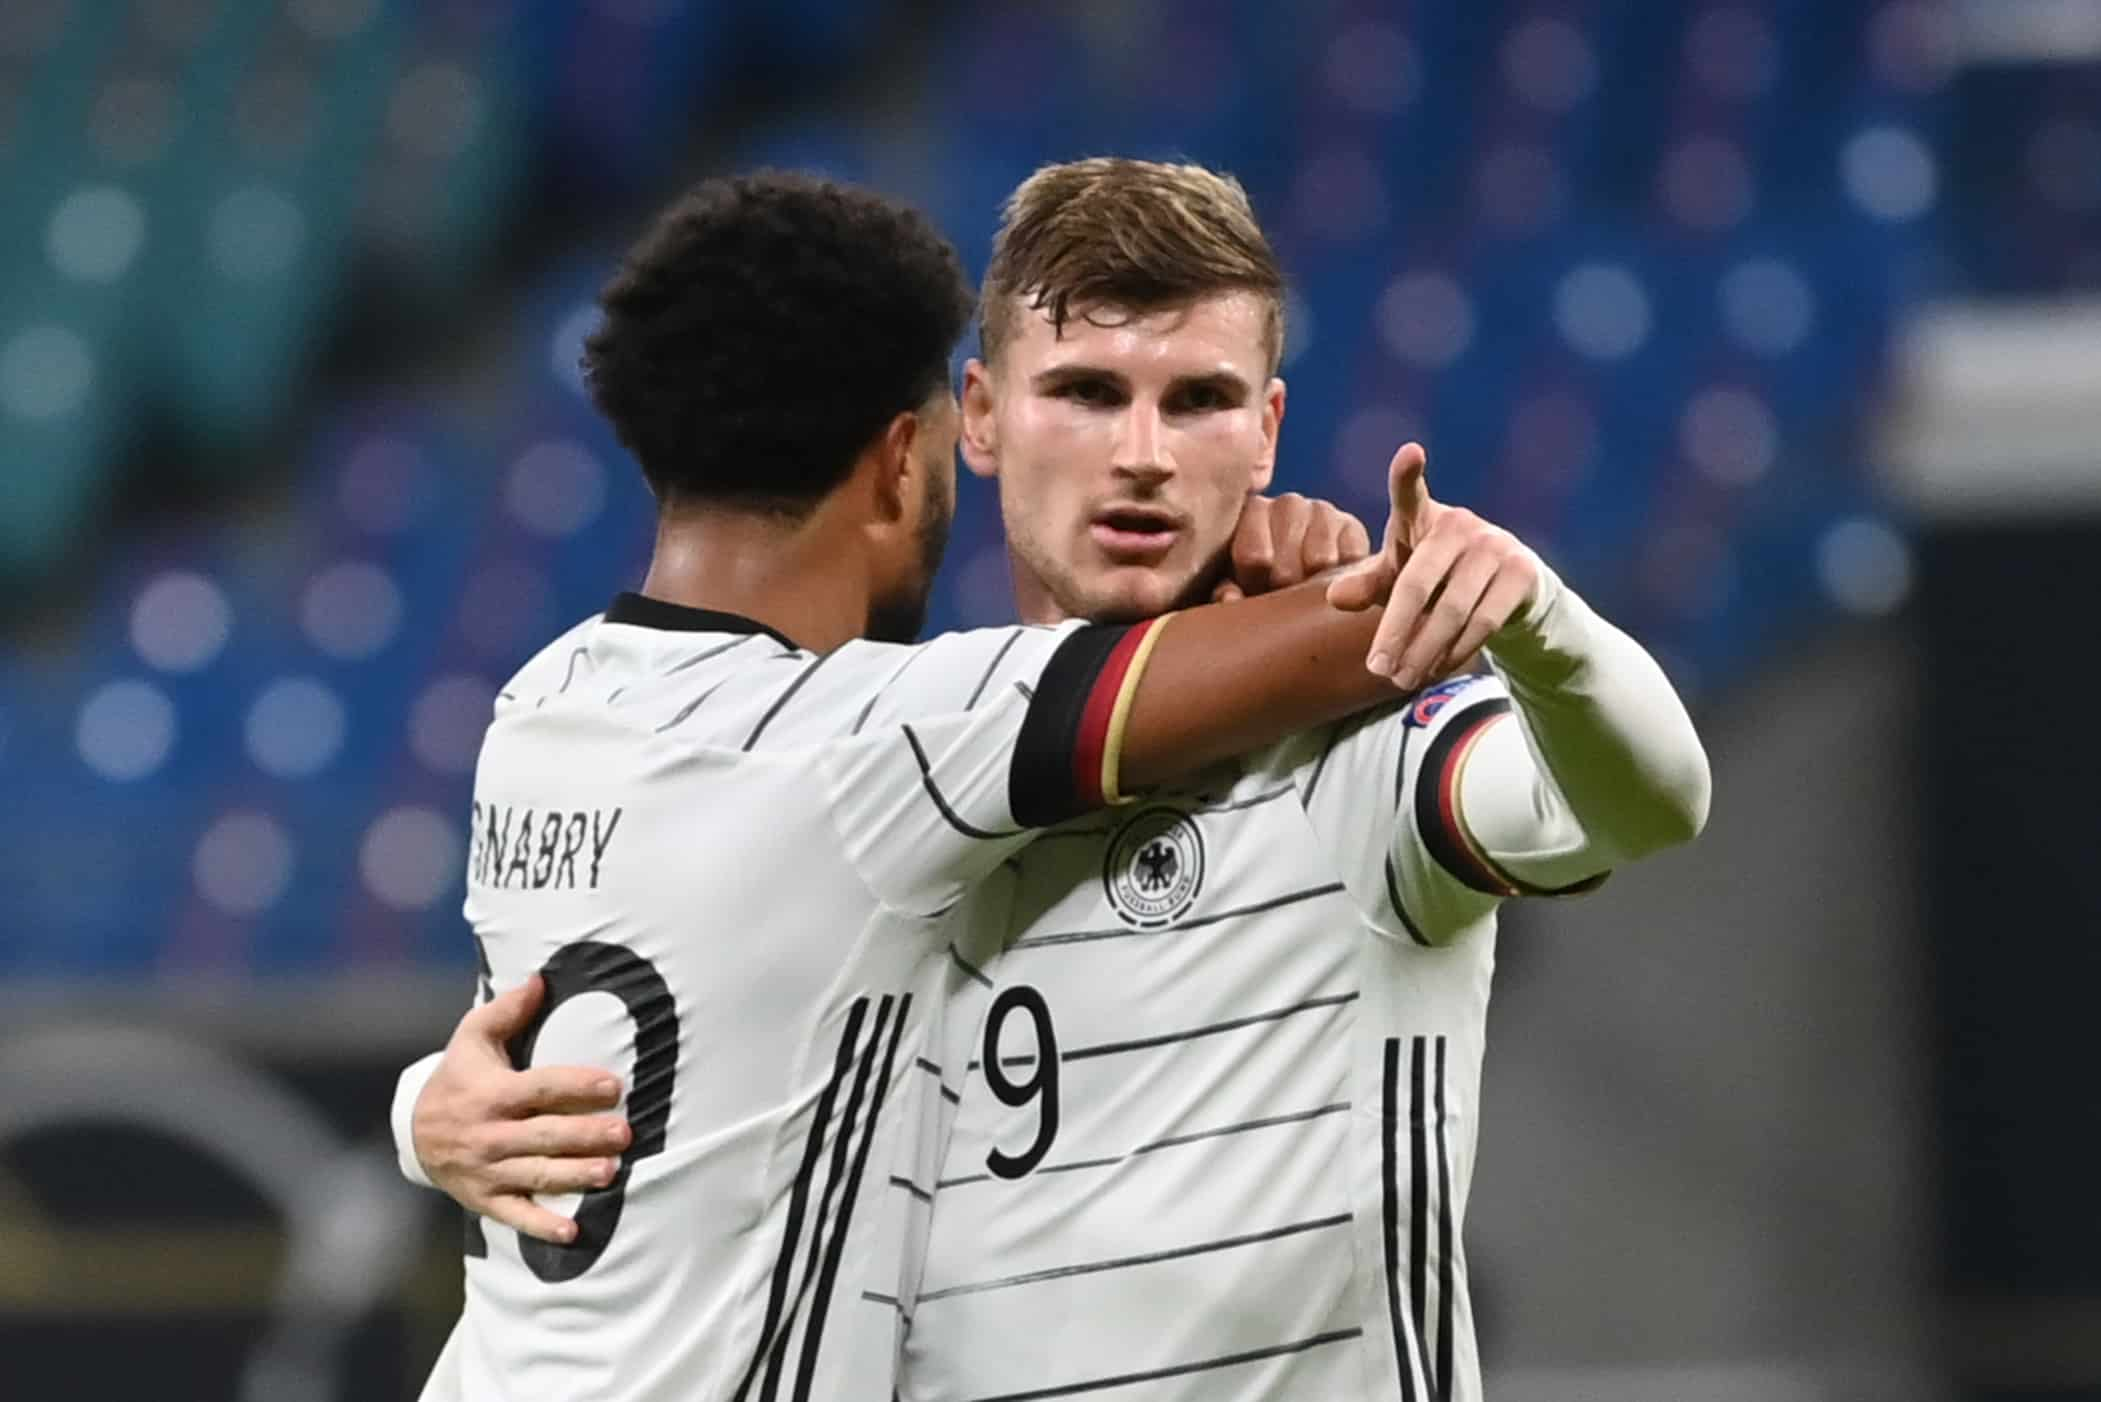 Spain vs Germany betting tips: Nations League preview, predictions & odds